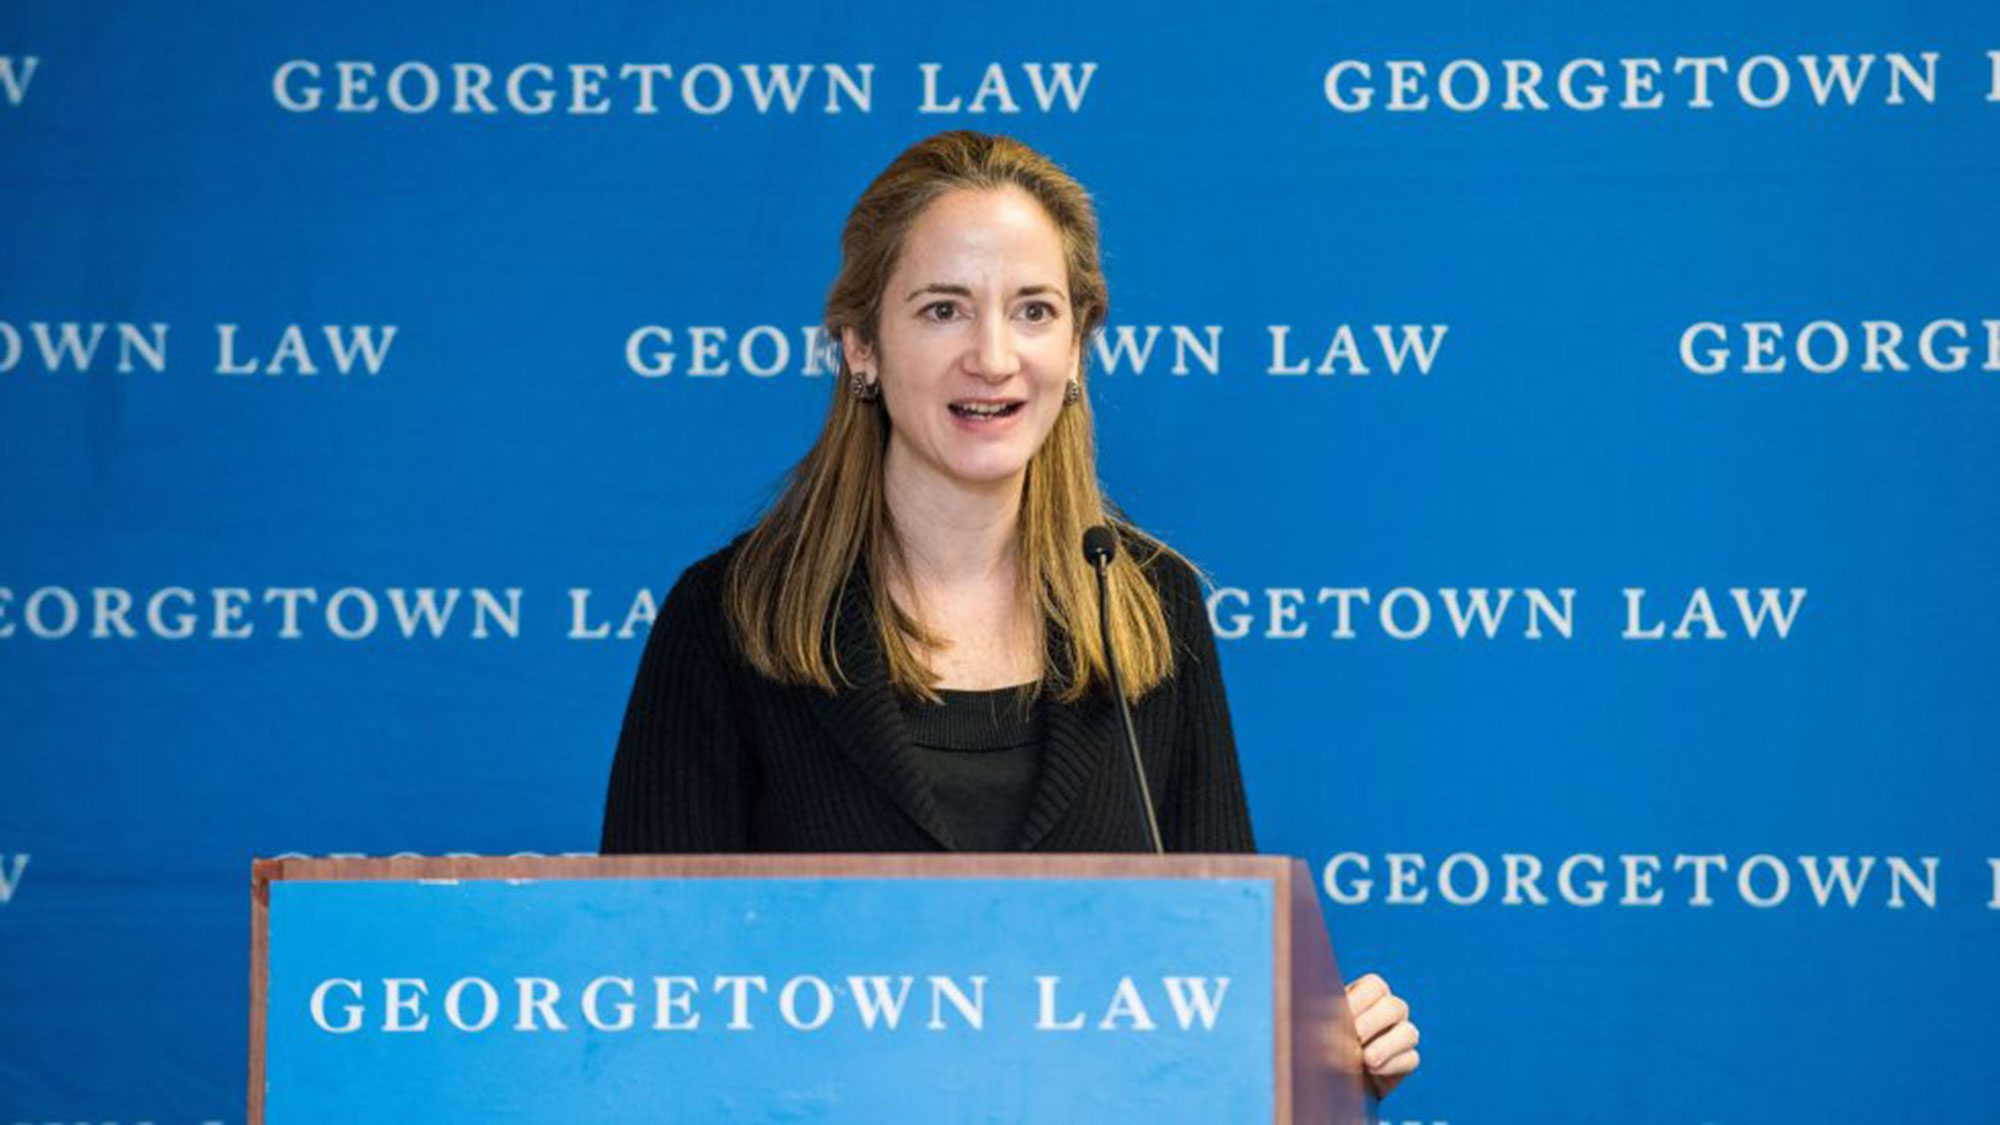 Avril Haines stands at a lectern with a microphone speaking in front of a blue Georgetown Law background.